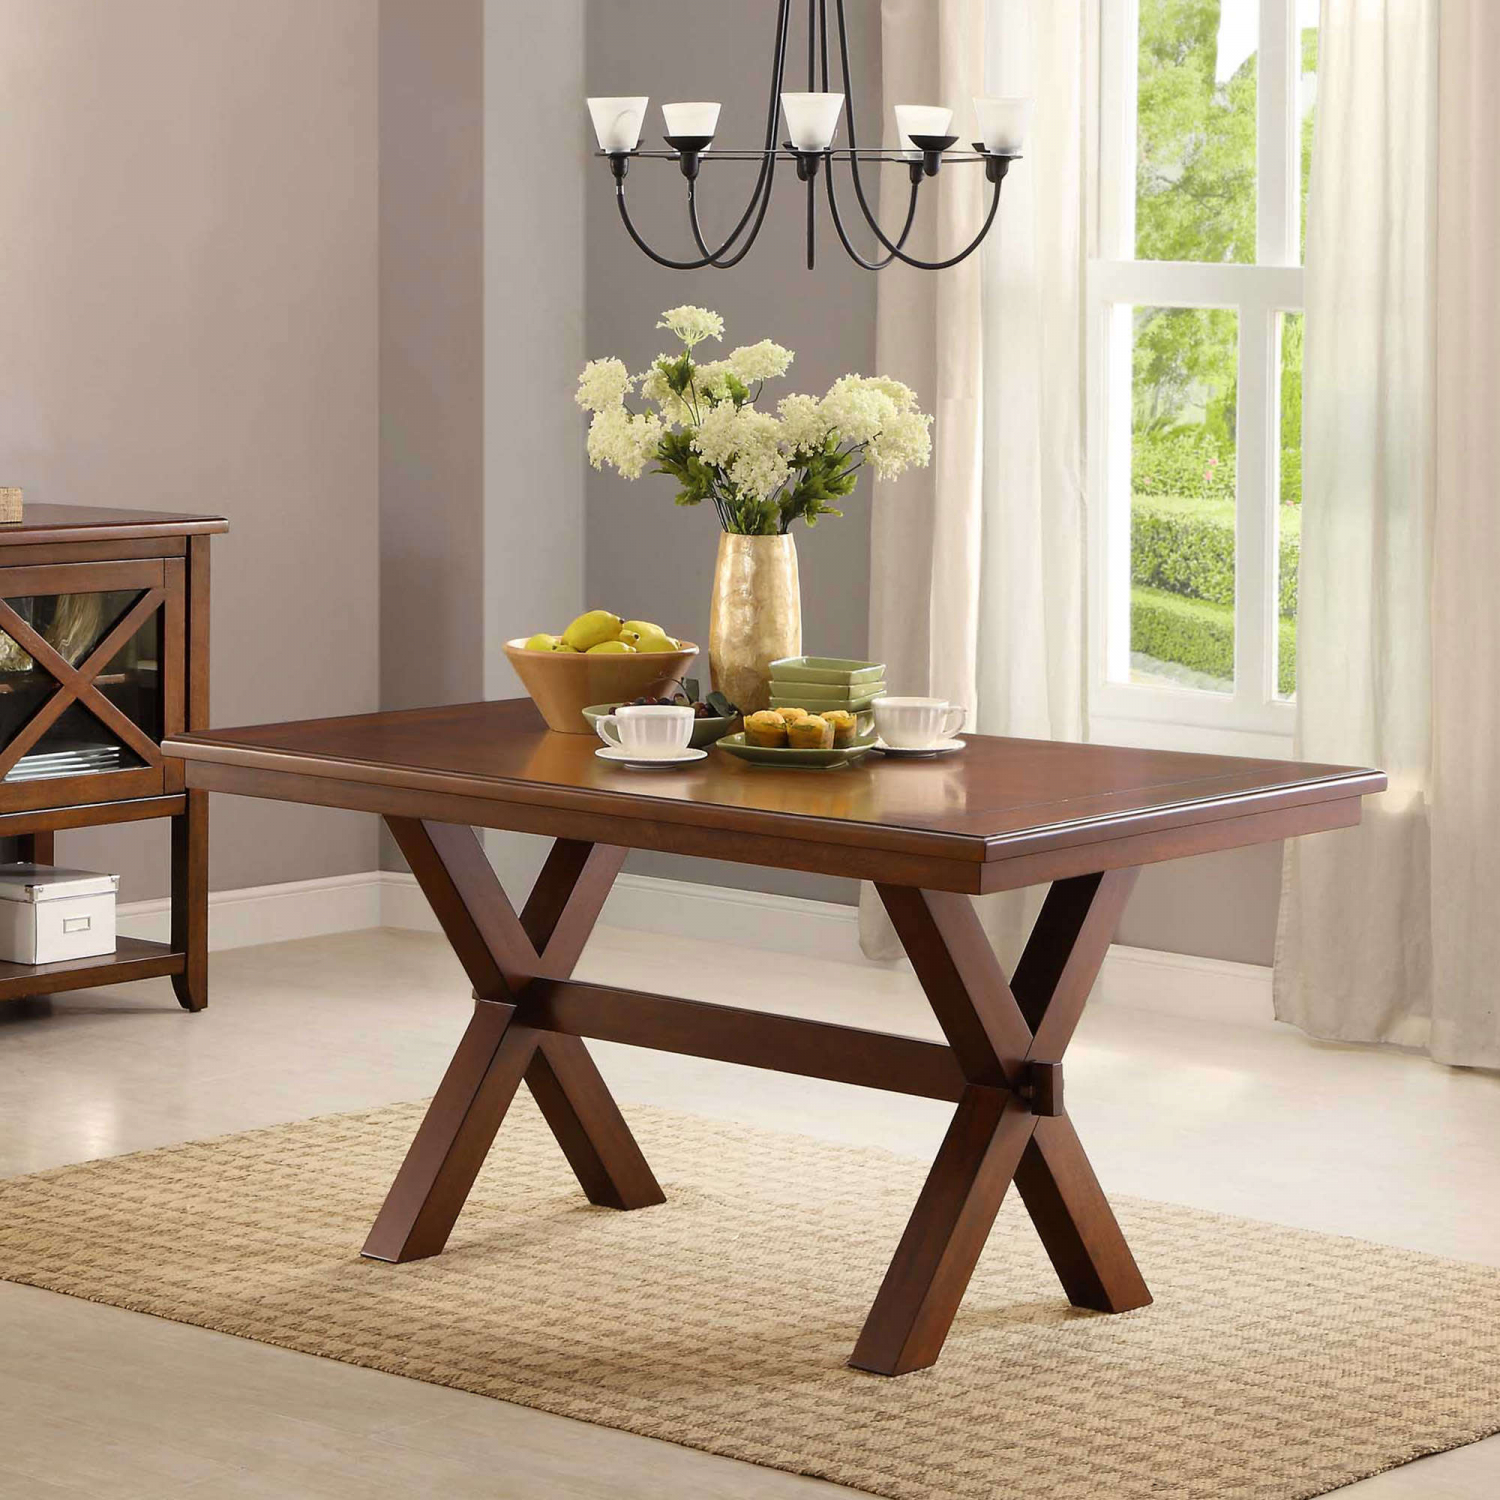 Details about farmhouse dining room table wood kitchen breakfast tables 6 person rectangular